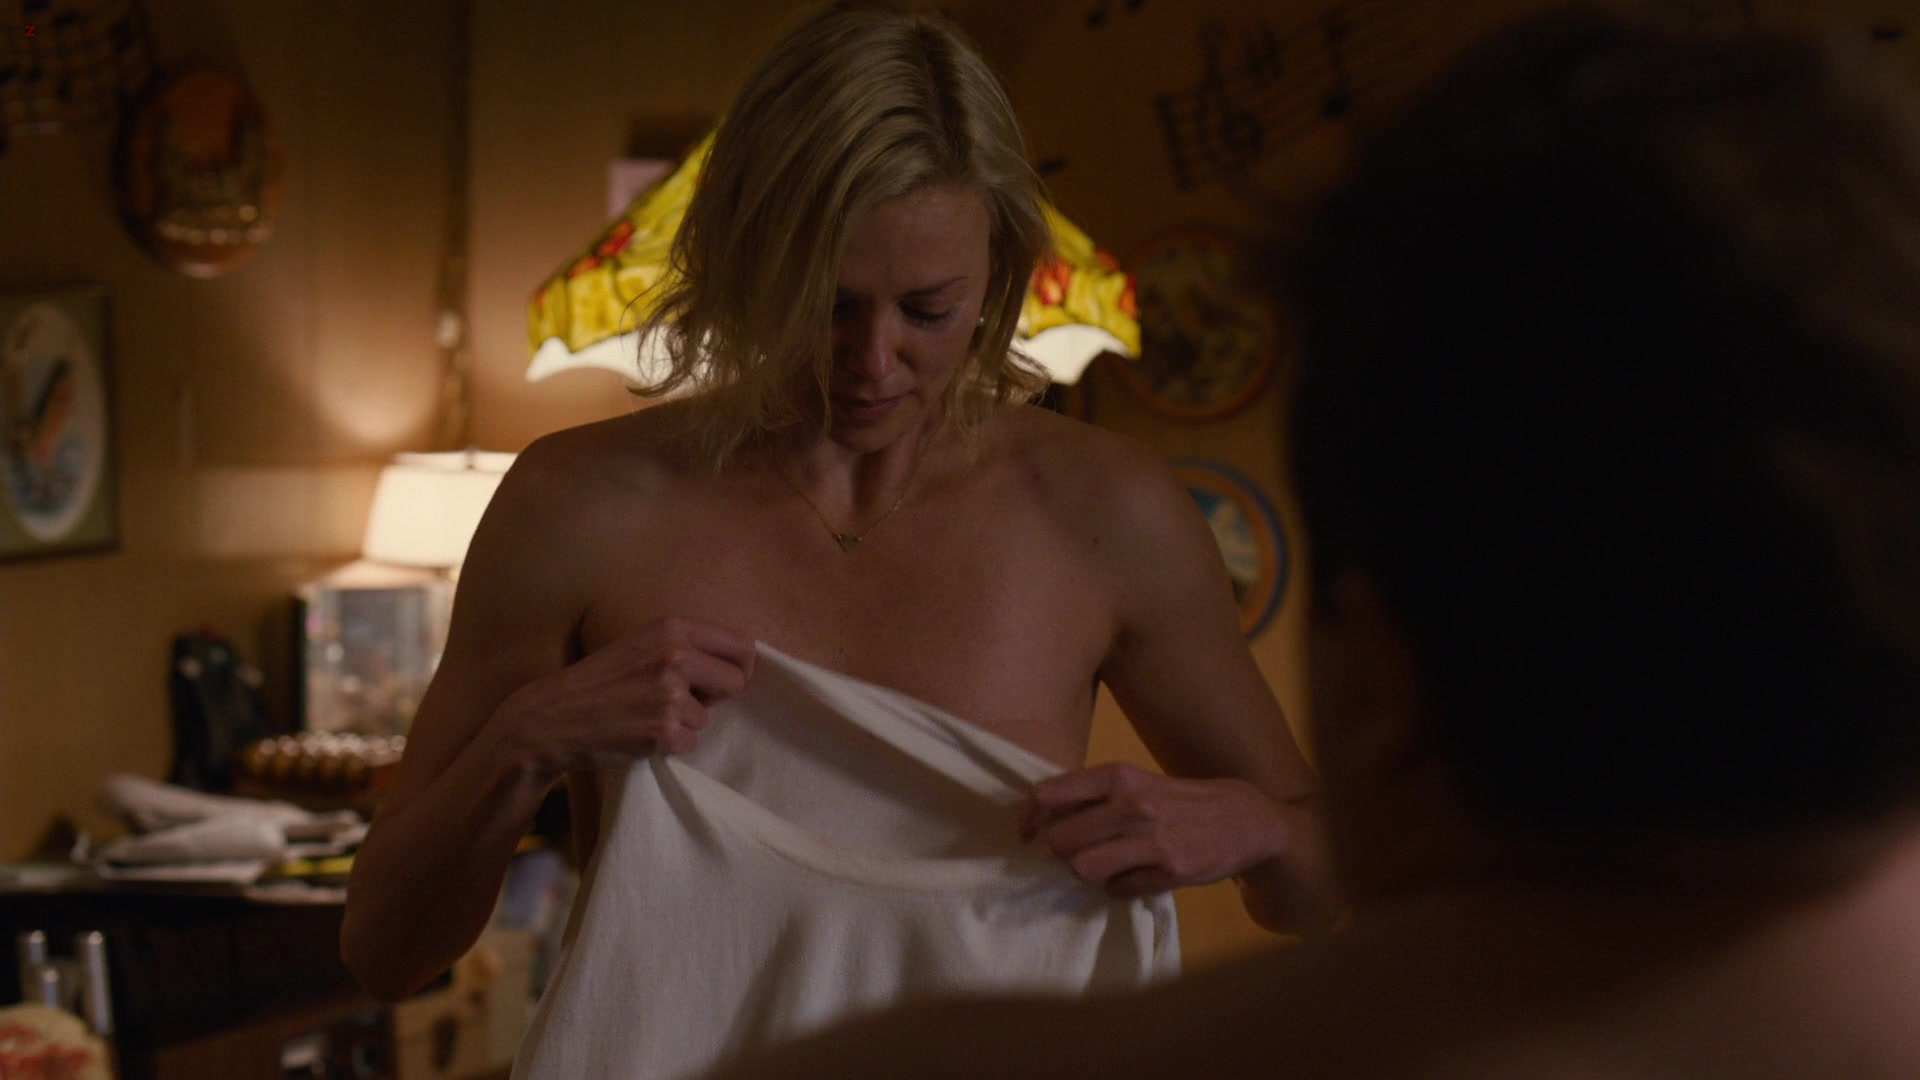 Charlize theron tied up naked, cindi wilson nude